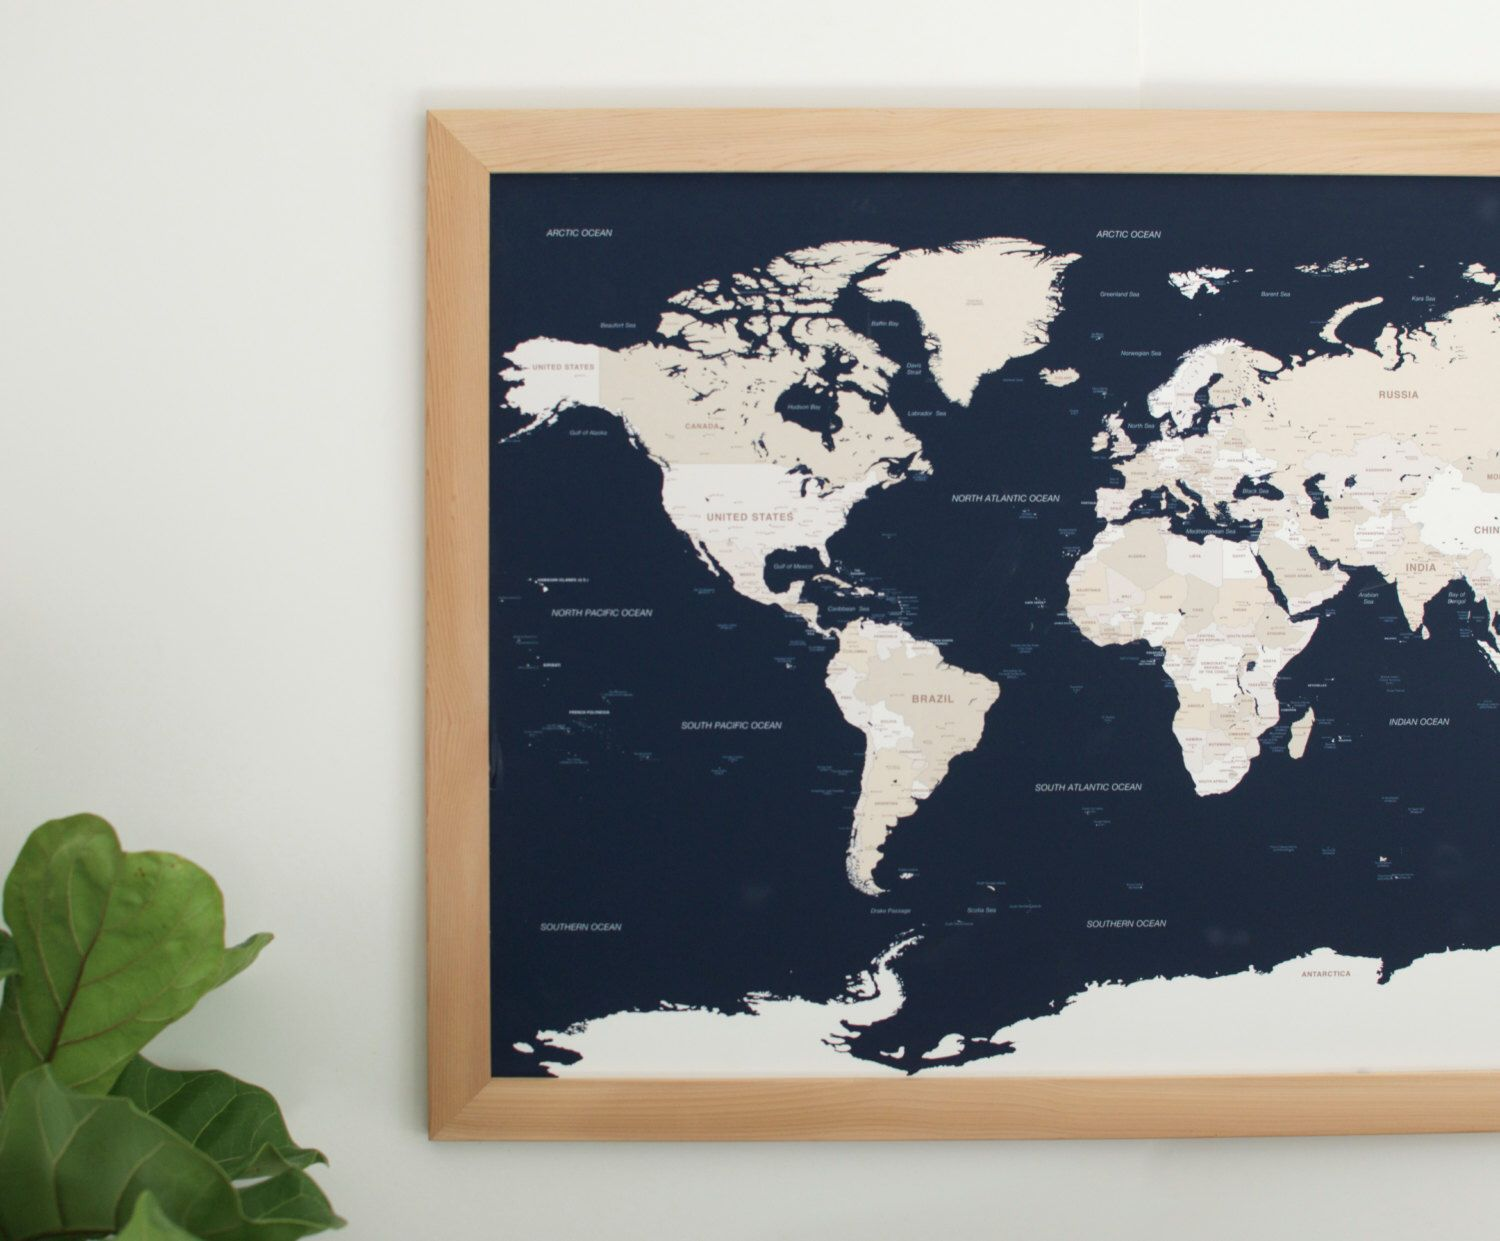 Push pin travel map navy blue world map push pin map push pin travel map navy blue world map push pin map handcrafted wood frame wedding anniversary gift christmas gifts for mom gumiabroncs Choice Image